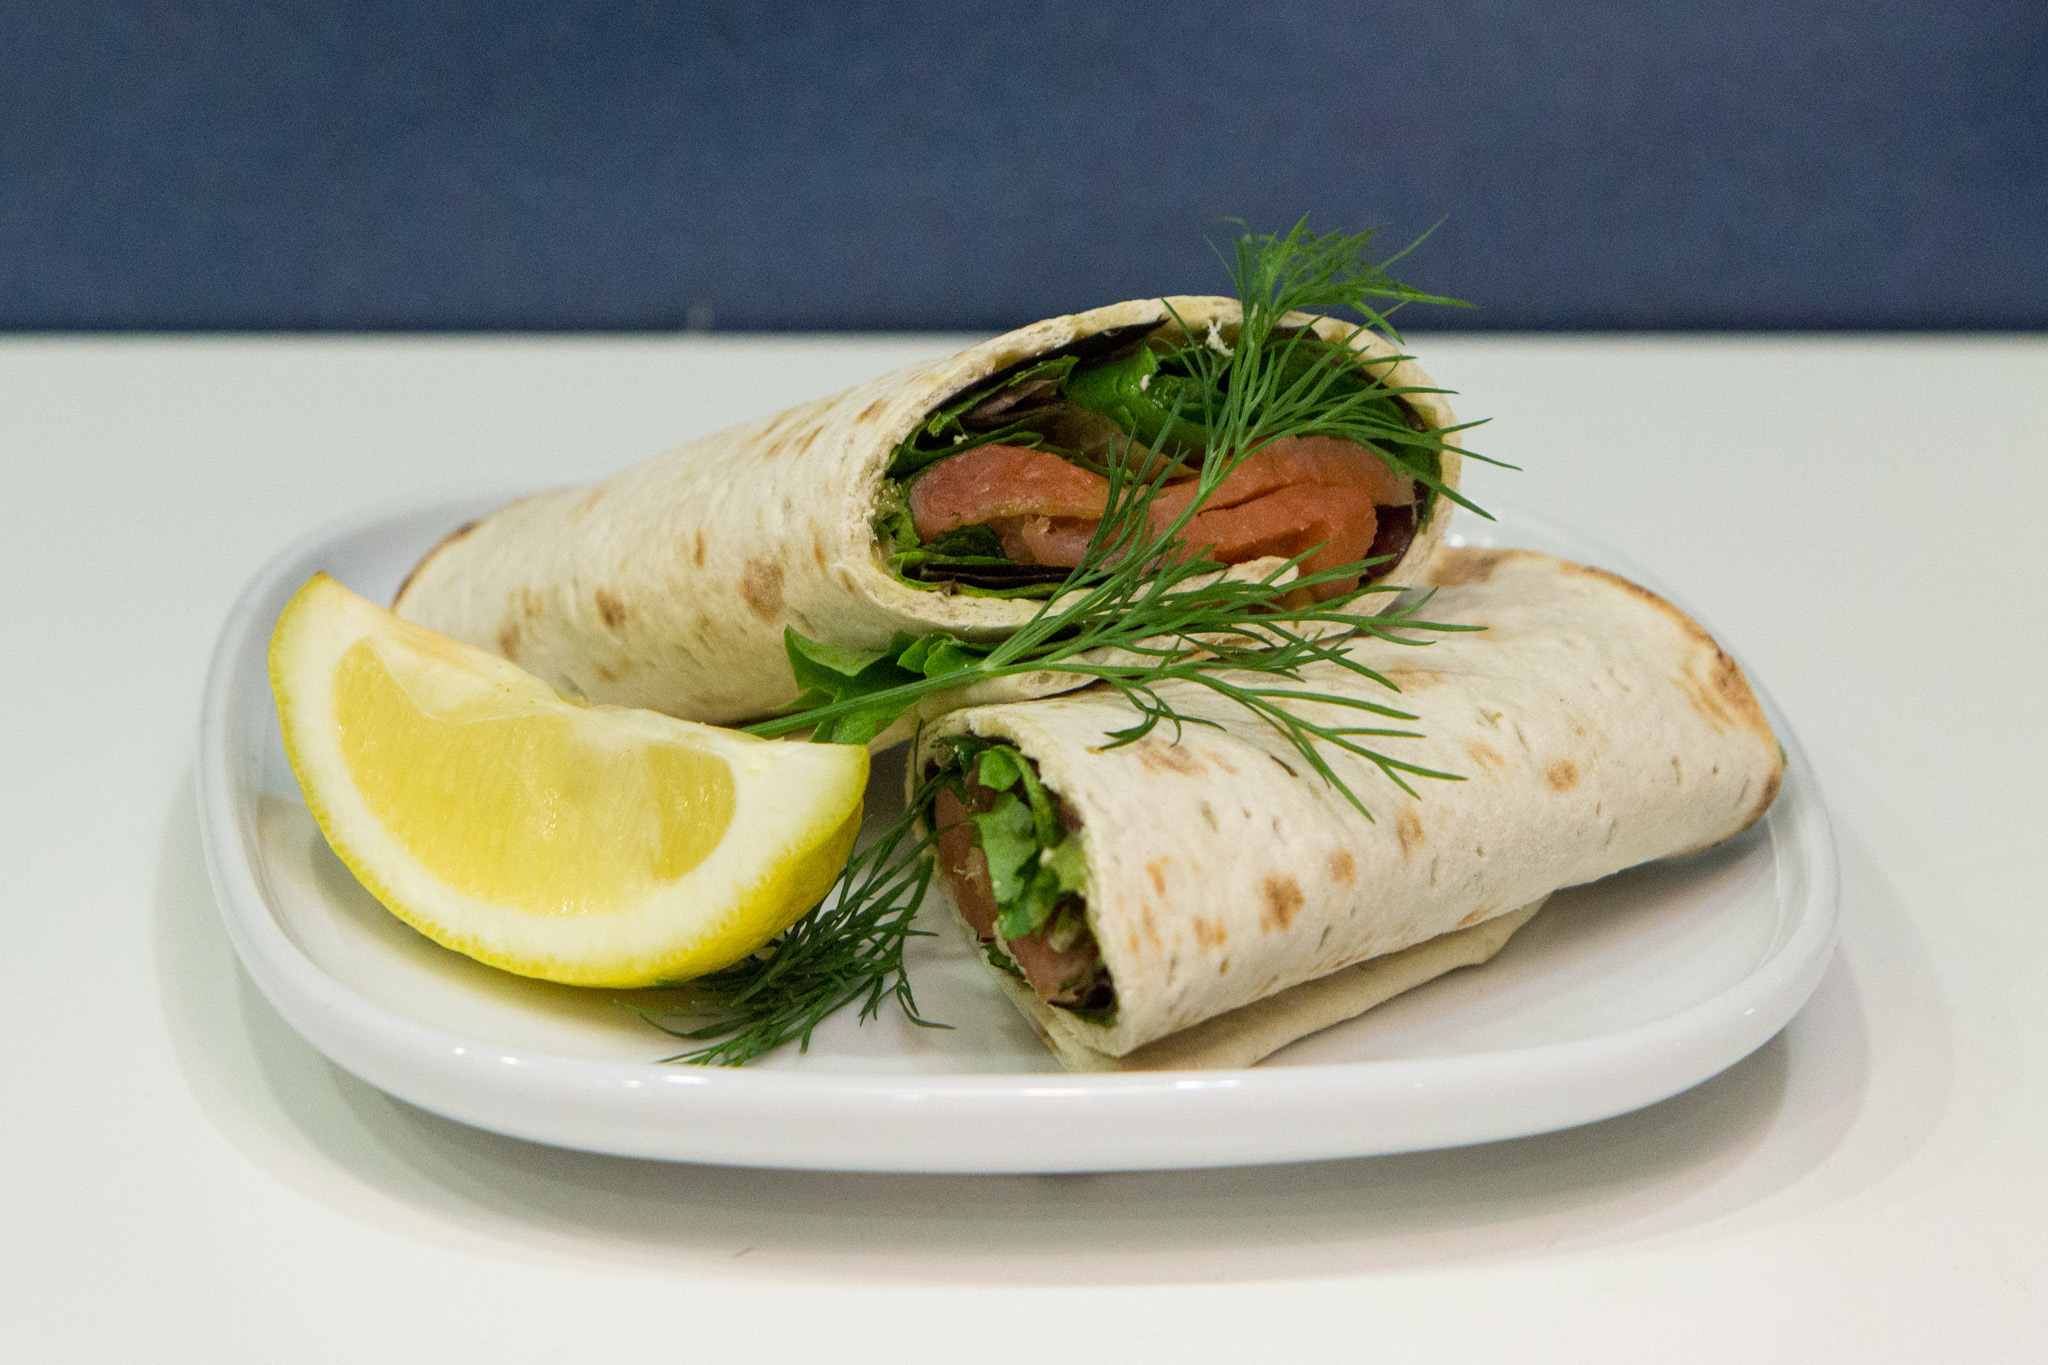 Marinated salmon wrap at IKEA Burbank